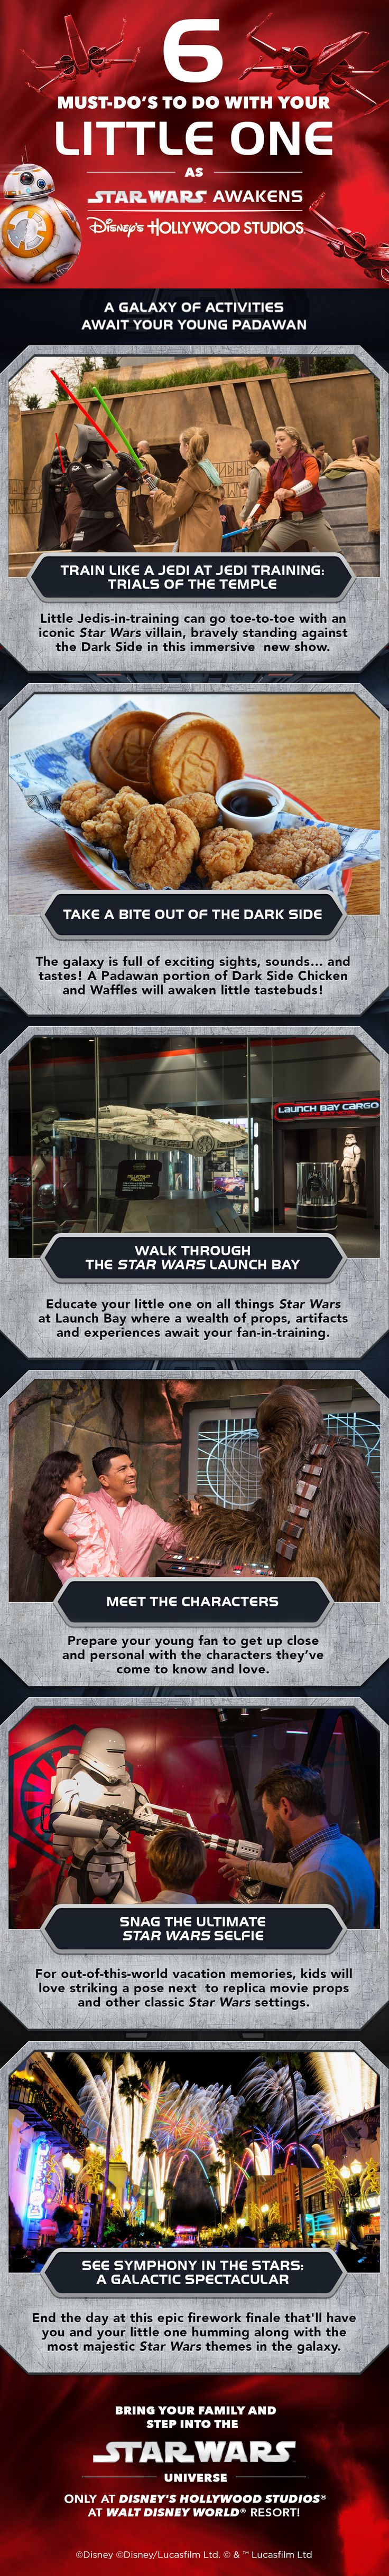 A galaxy of activities await your young Padawan at Walt Disney World Resort! Check out these '6 Must-Do's' with your little one as Star Wars Awakens at Disney's Hollywood Studios!